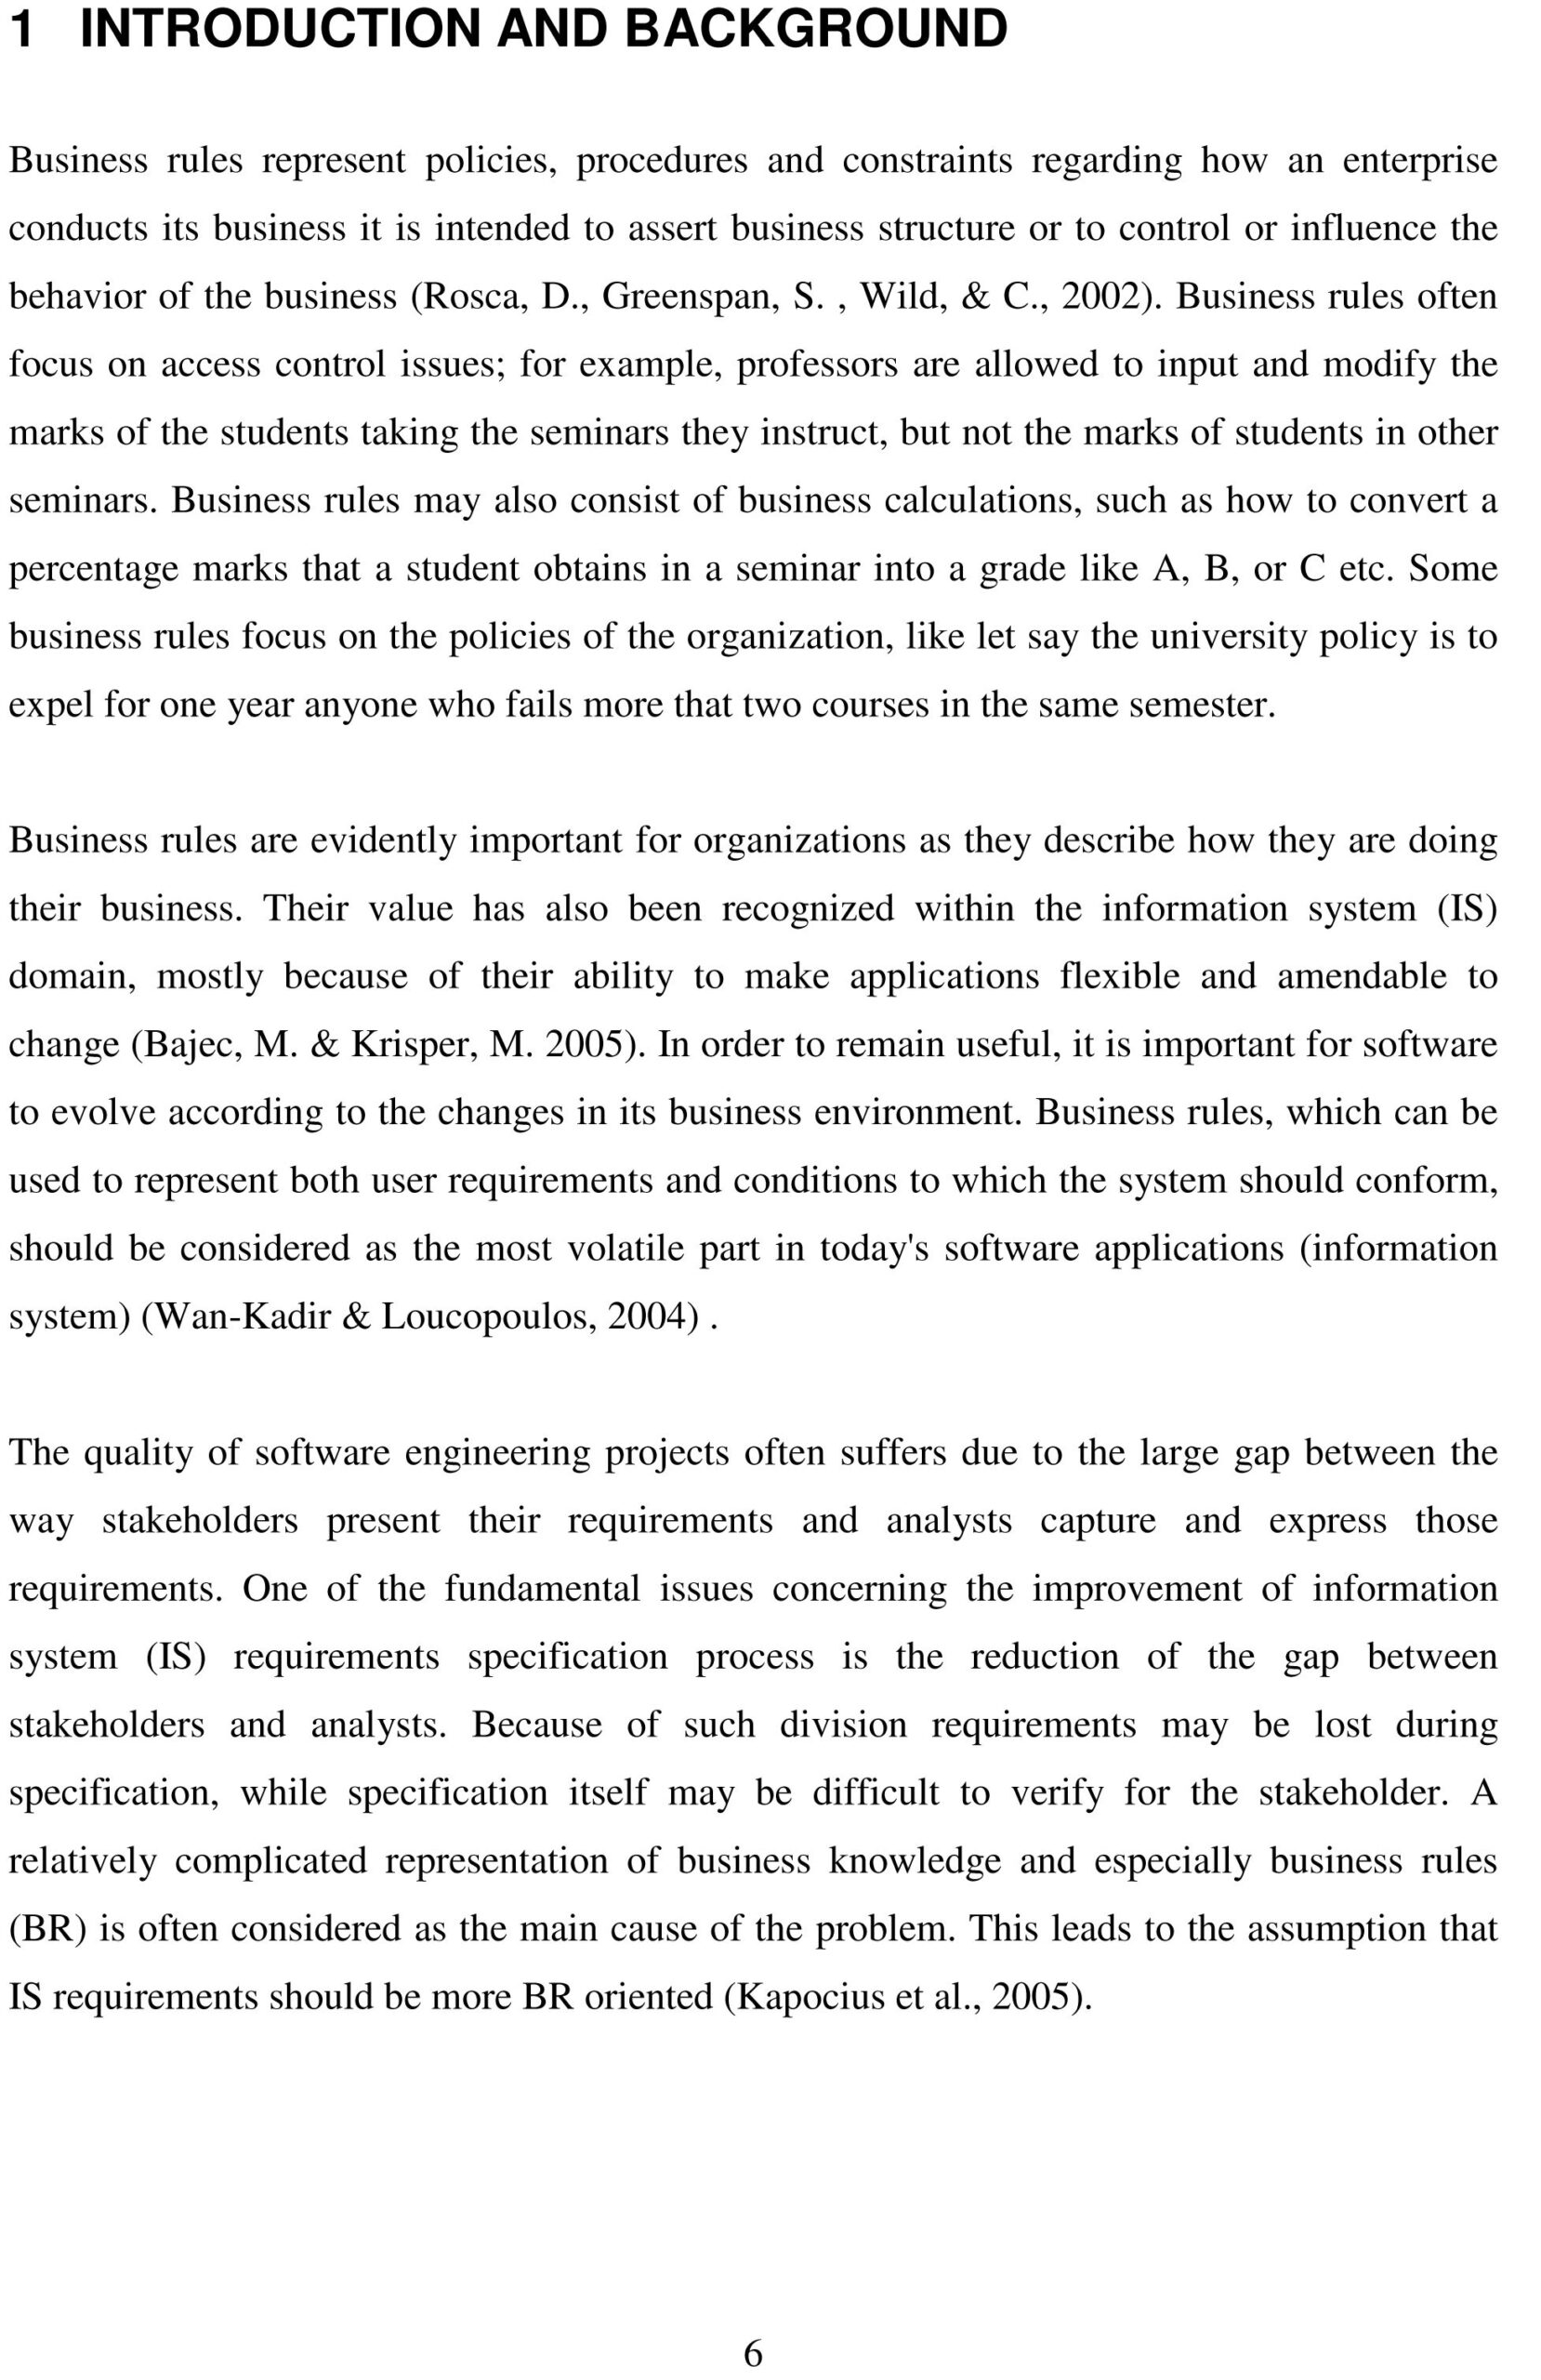 Full Size of Abortion Argumentative Essay Introduction